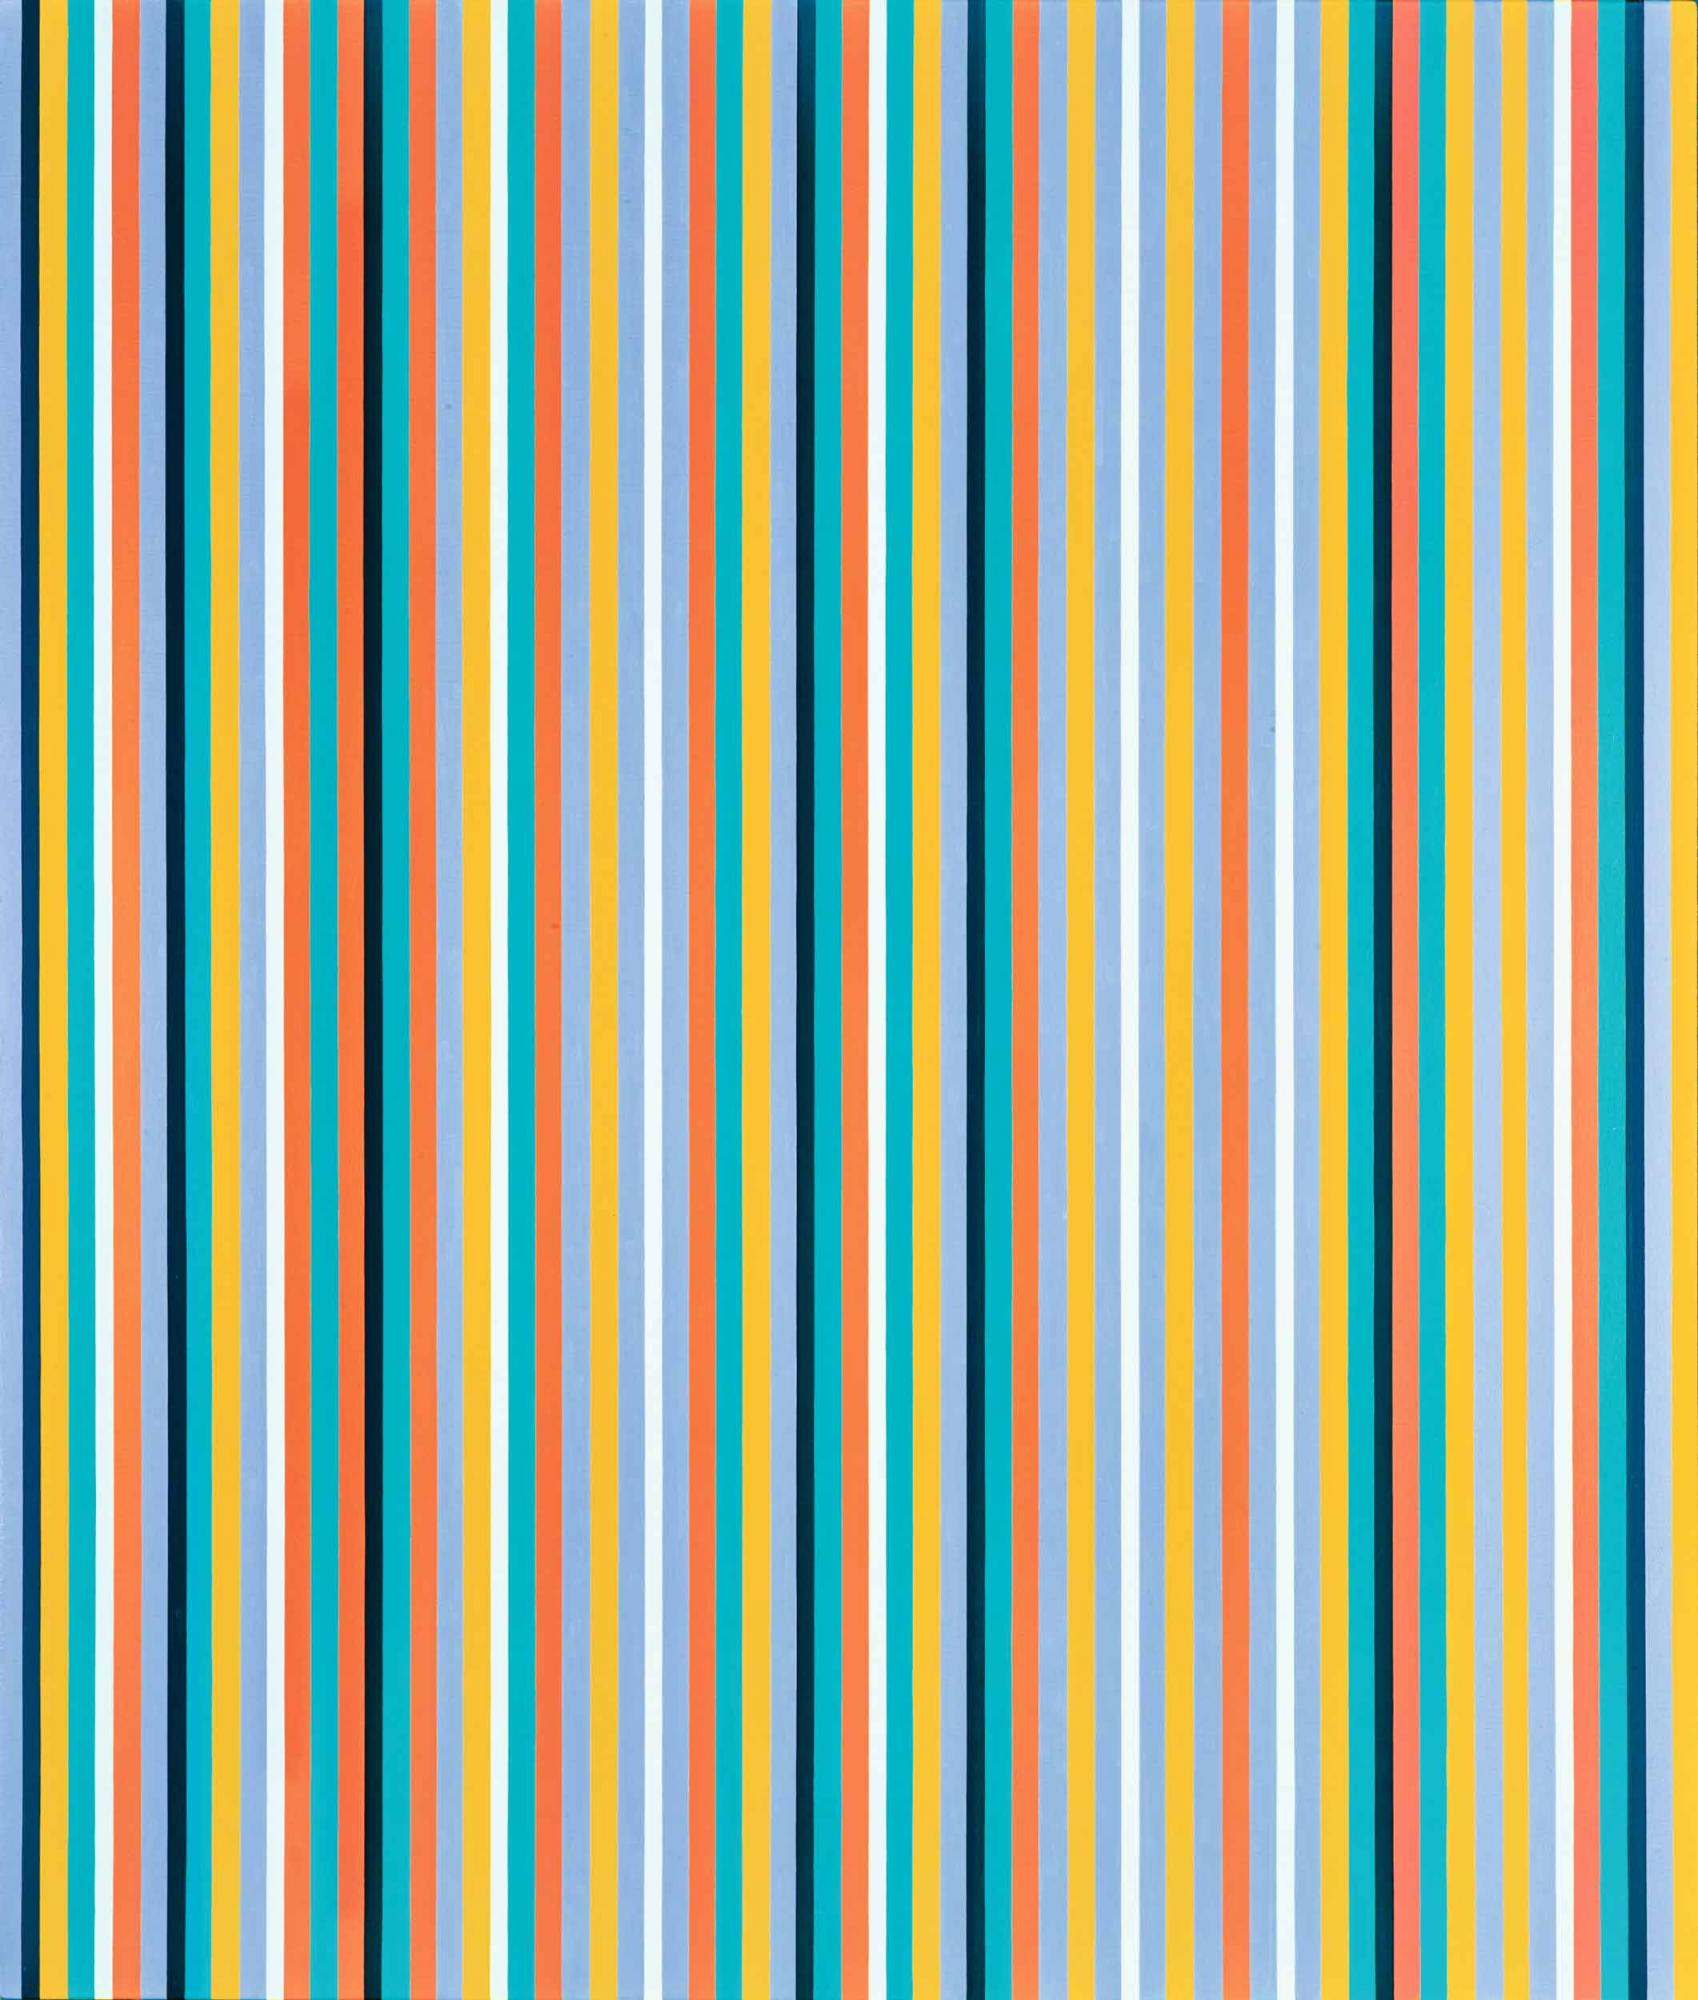 Lot-3-Bridget-Riley-Cool-Edge-800000-1.jpg